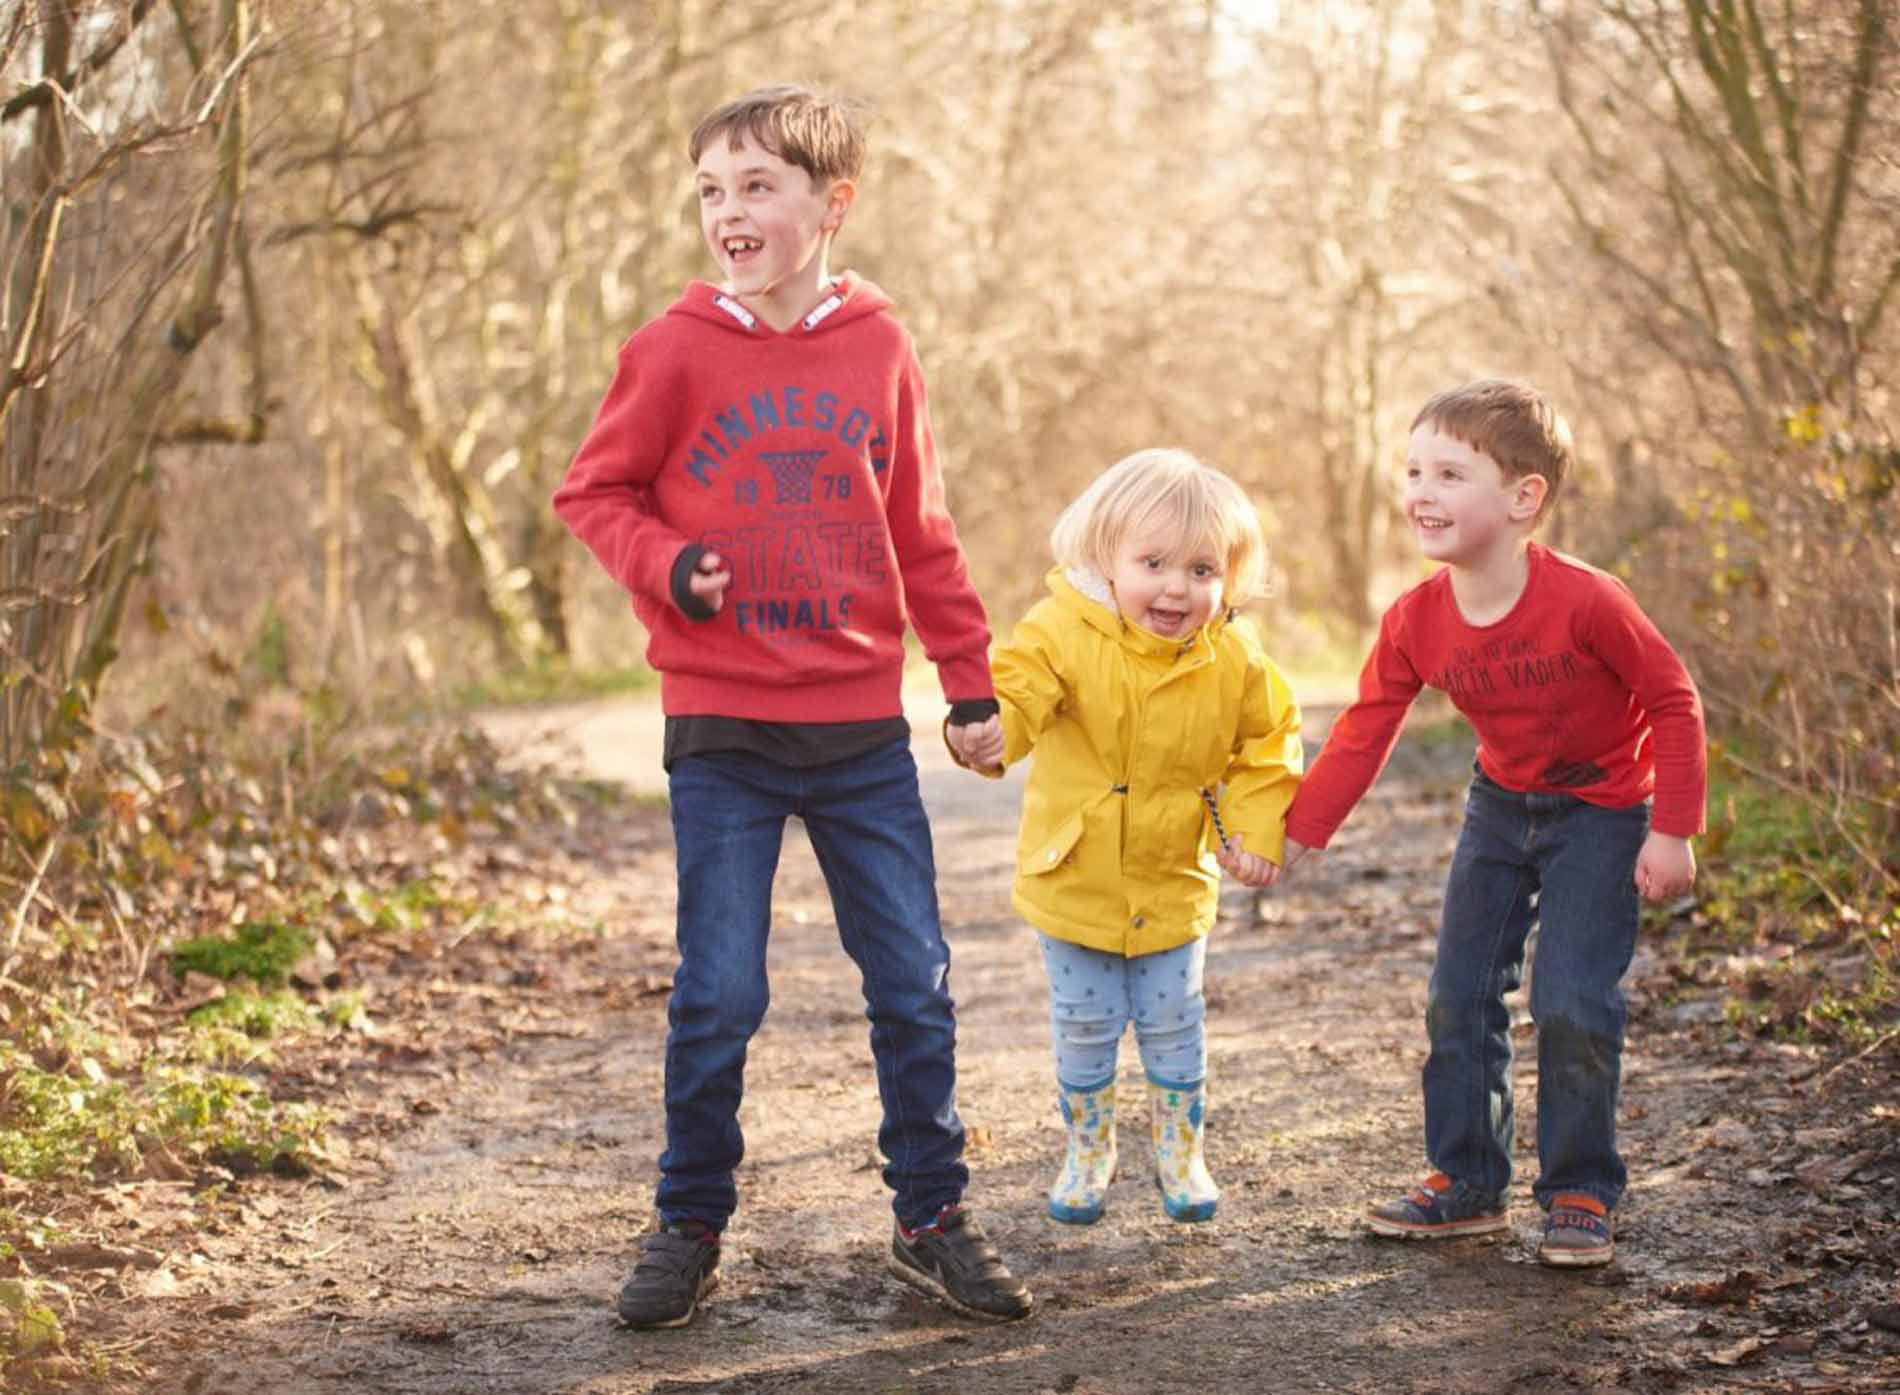 Jones_Family_Walthamstow_Marshes_2018_Paula_Siqueira_Photography_024-e1526173190914